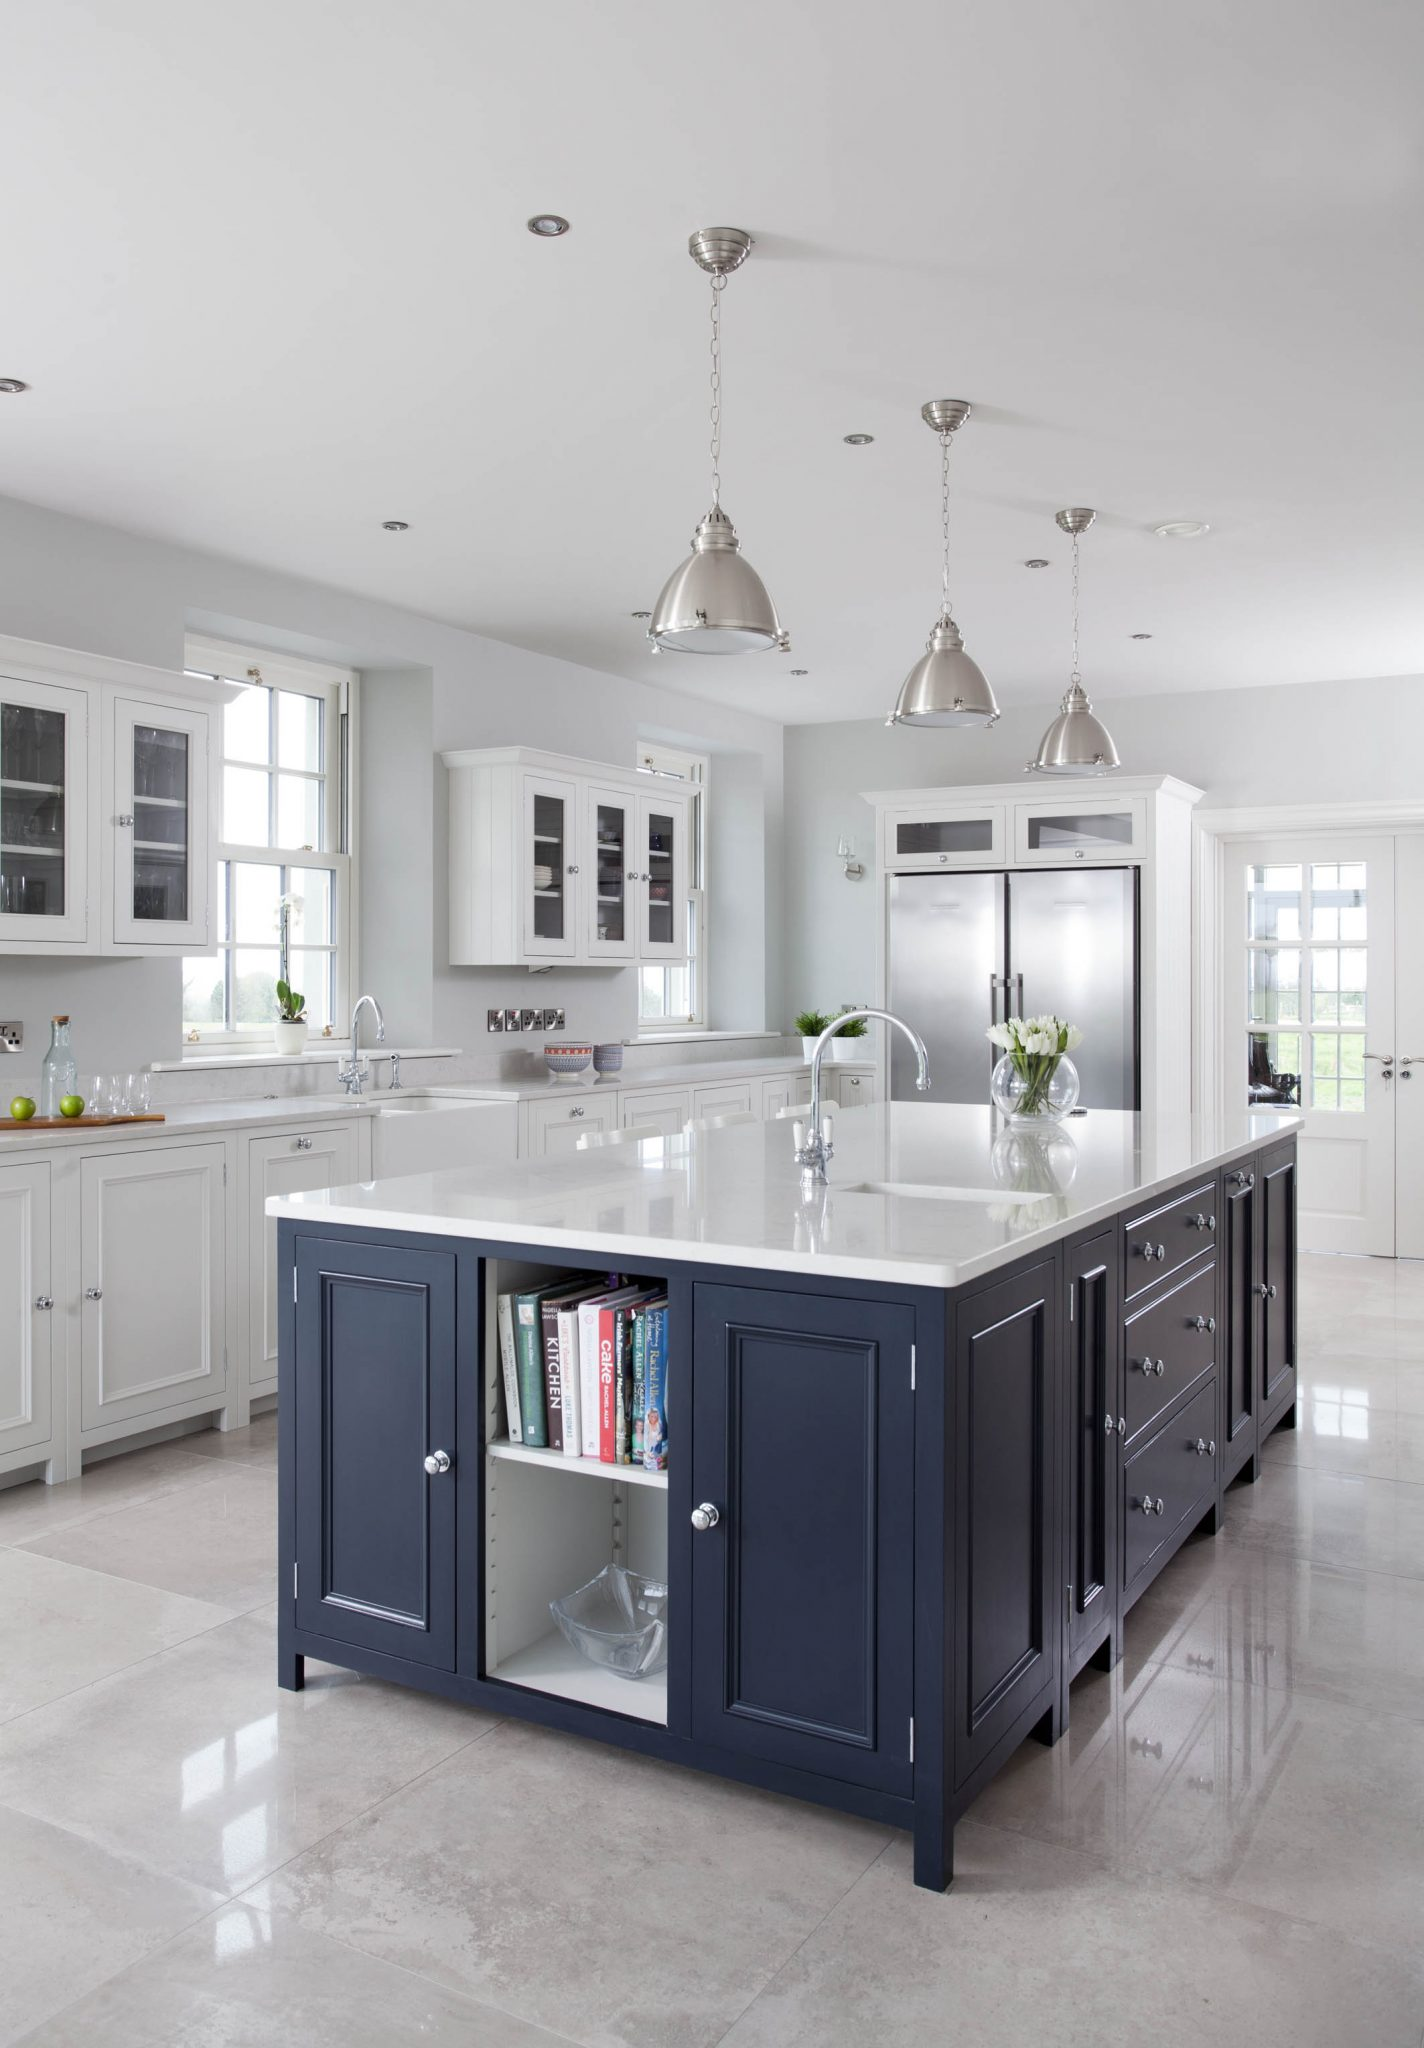 Neptune Chichester Kitchen Design by Deanery Furniture - Deanery ...